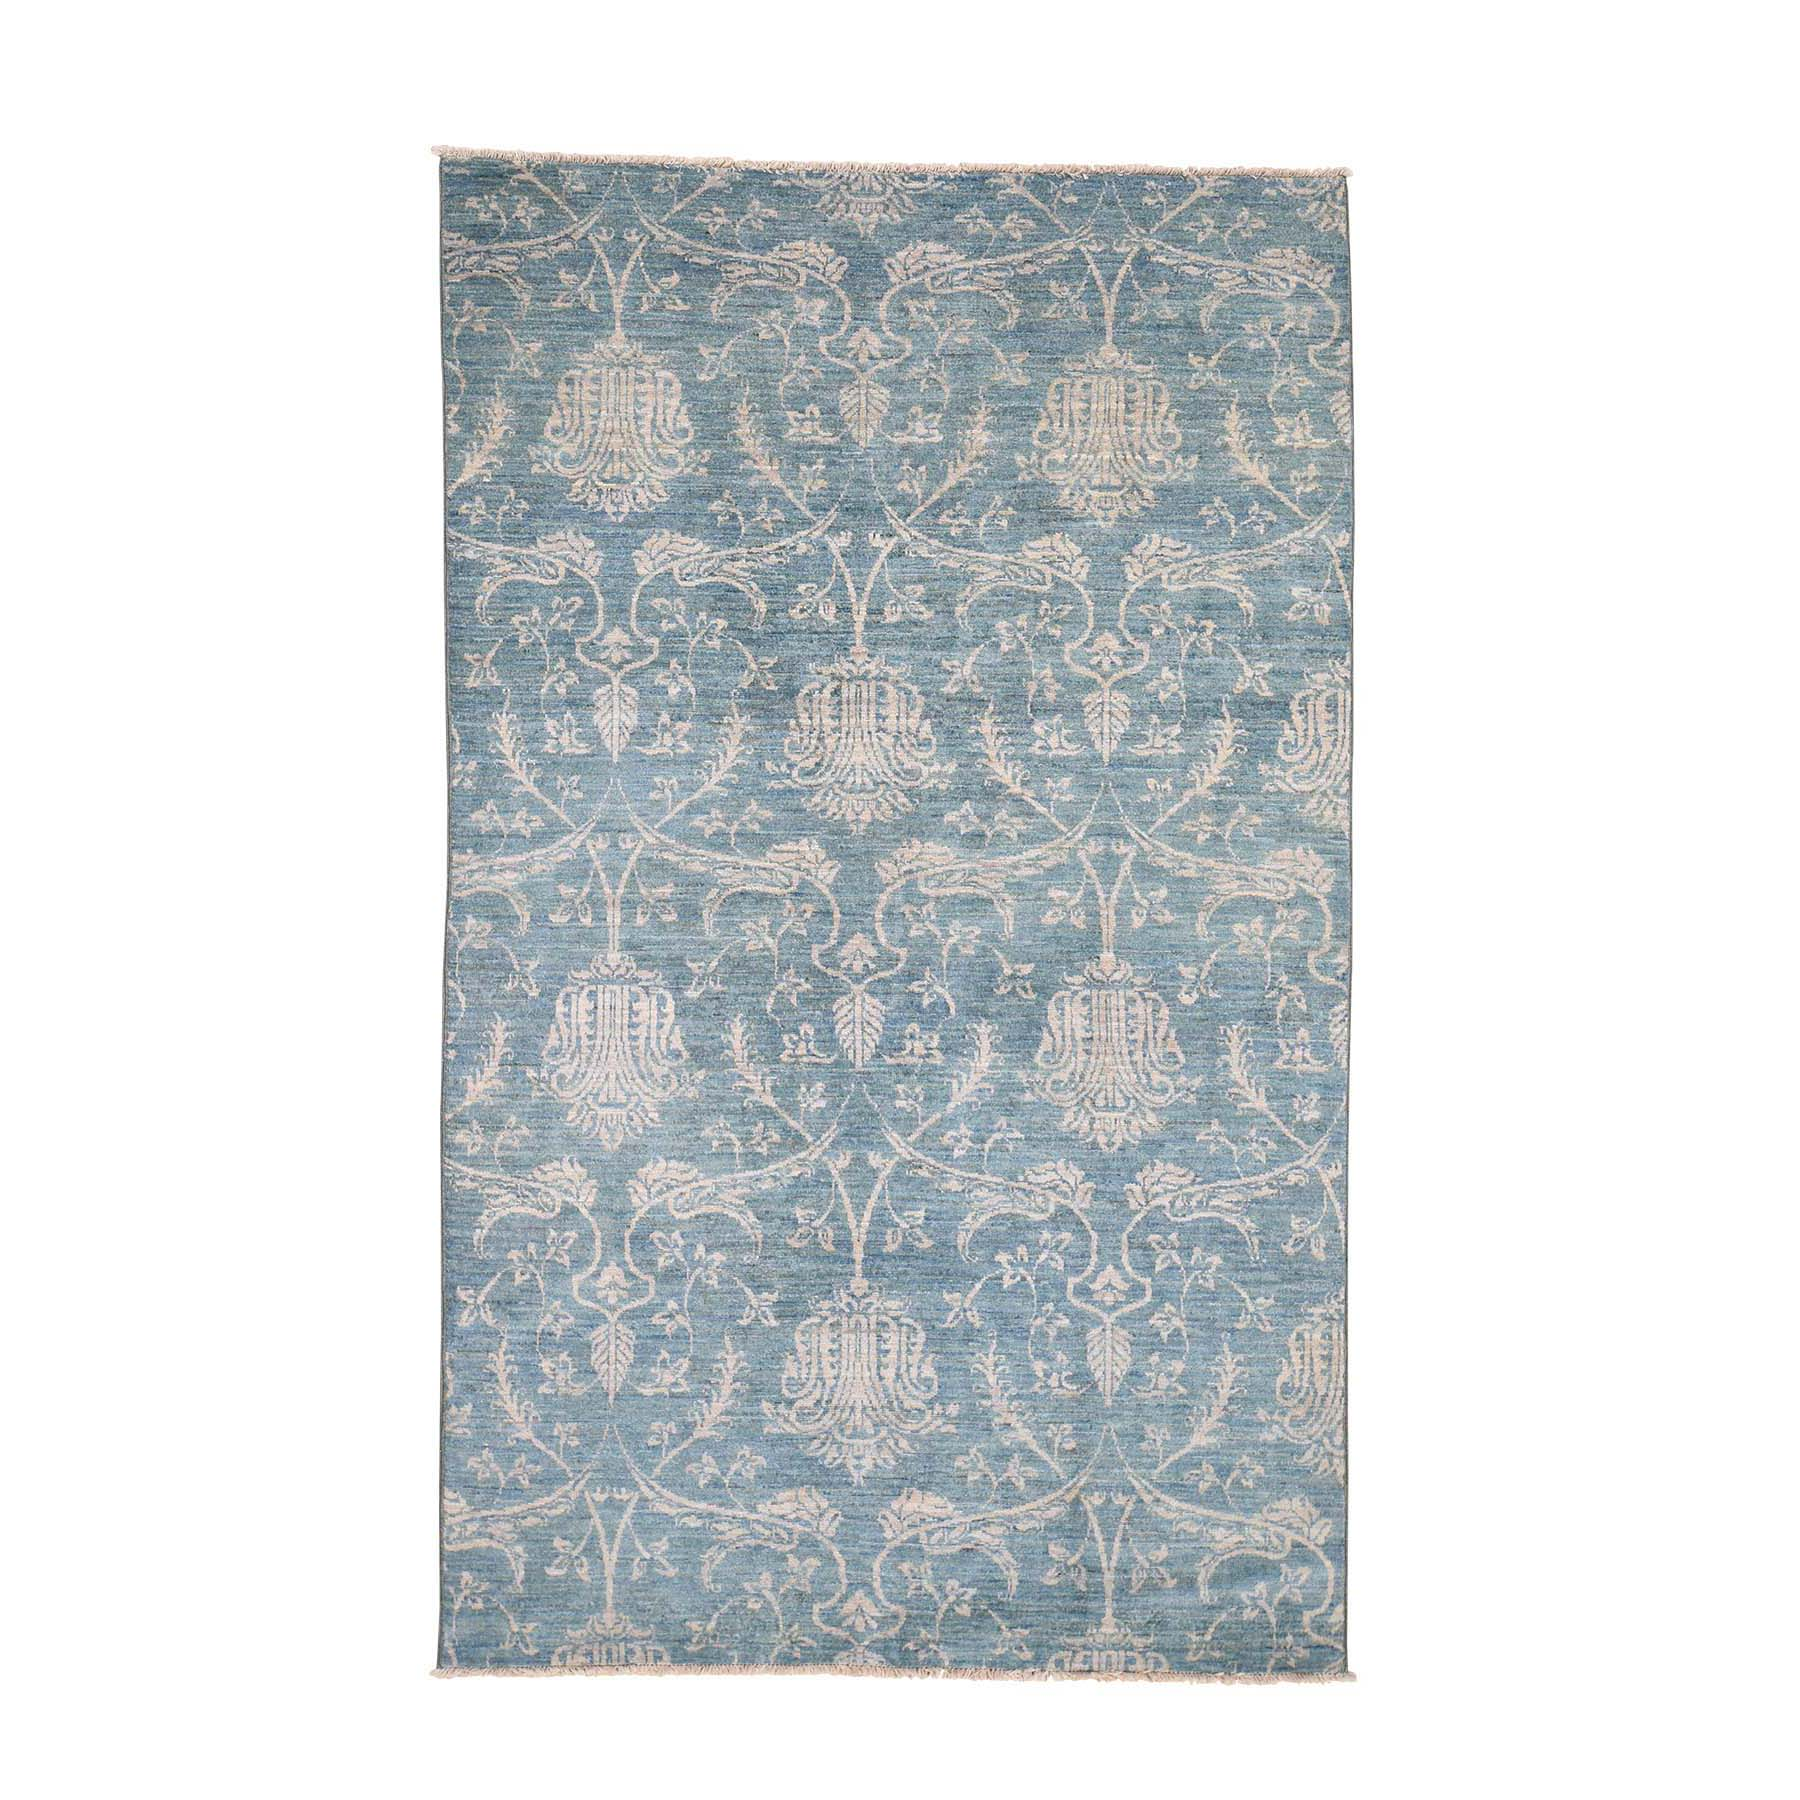 Eclectic and Bohemian Collection Hand Knotted Blue Rug No: 0190296